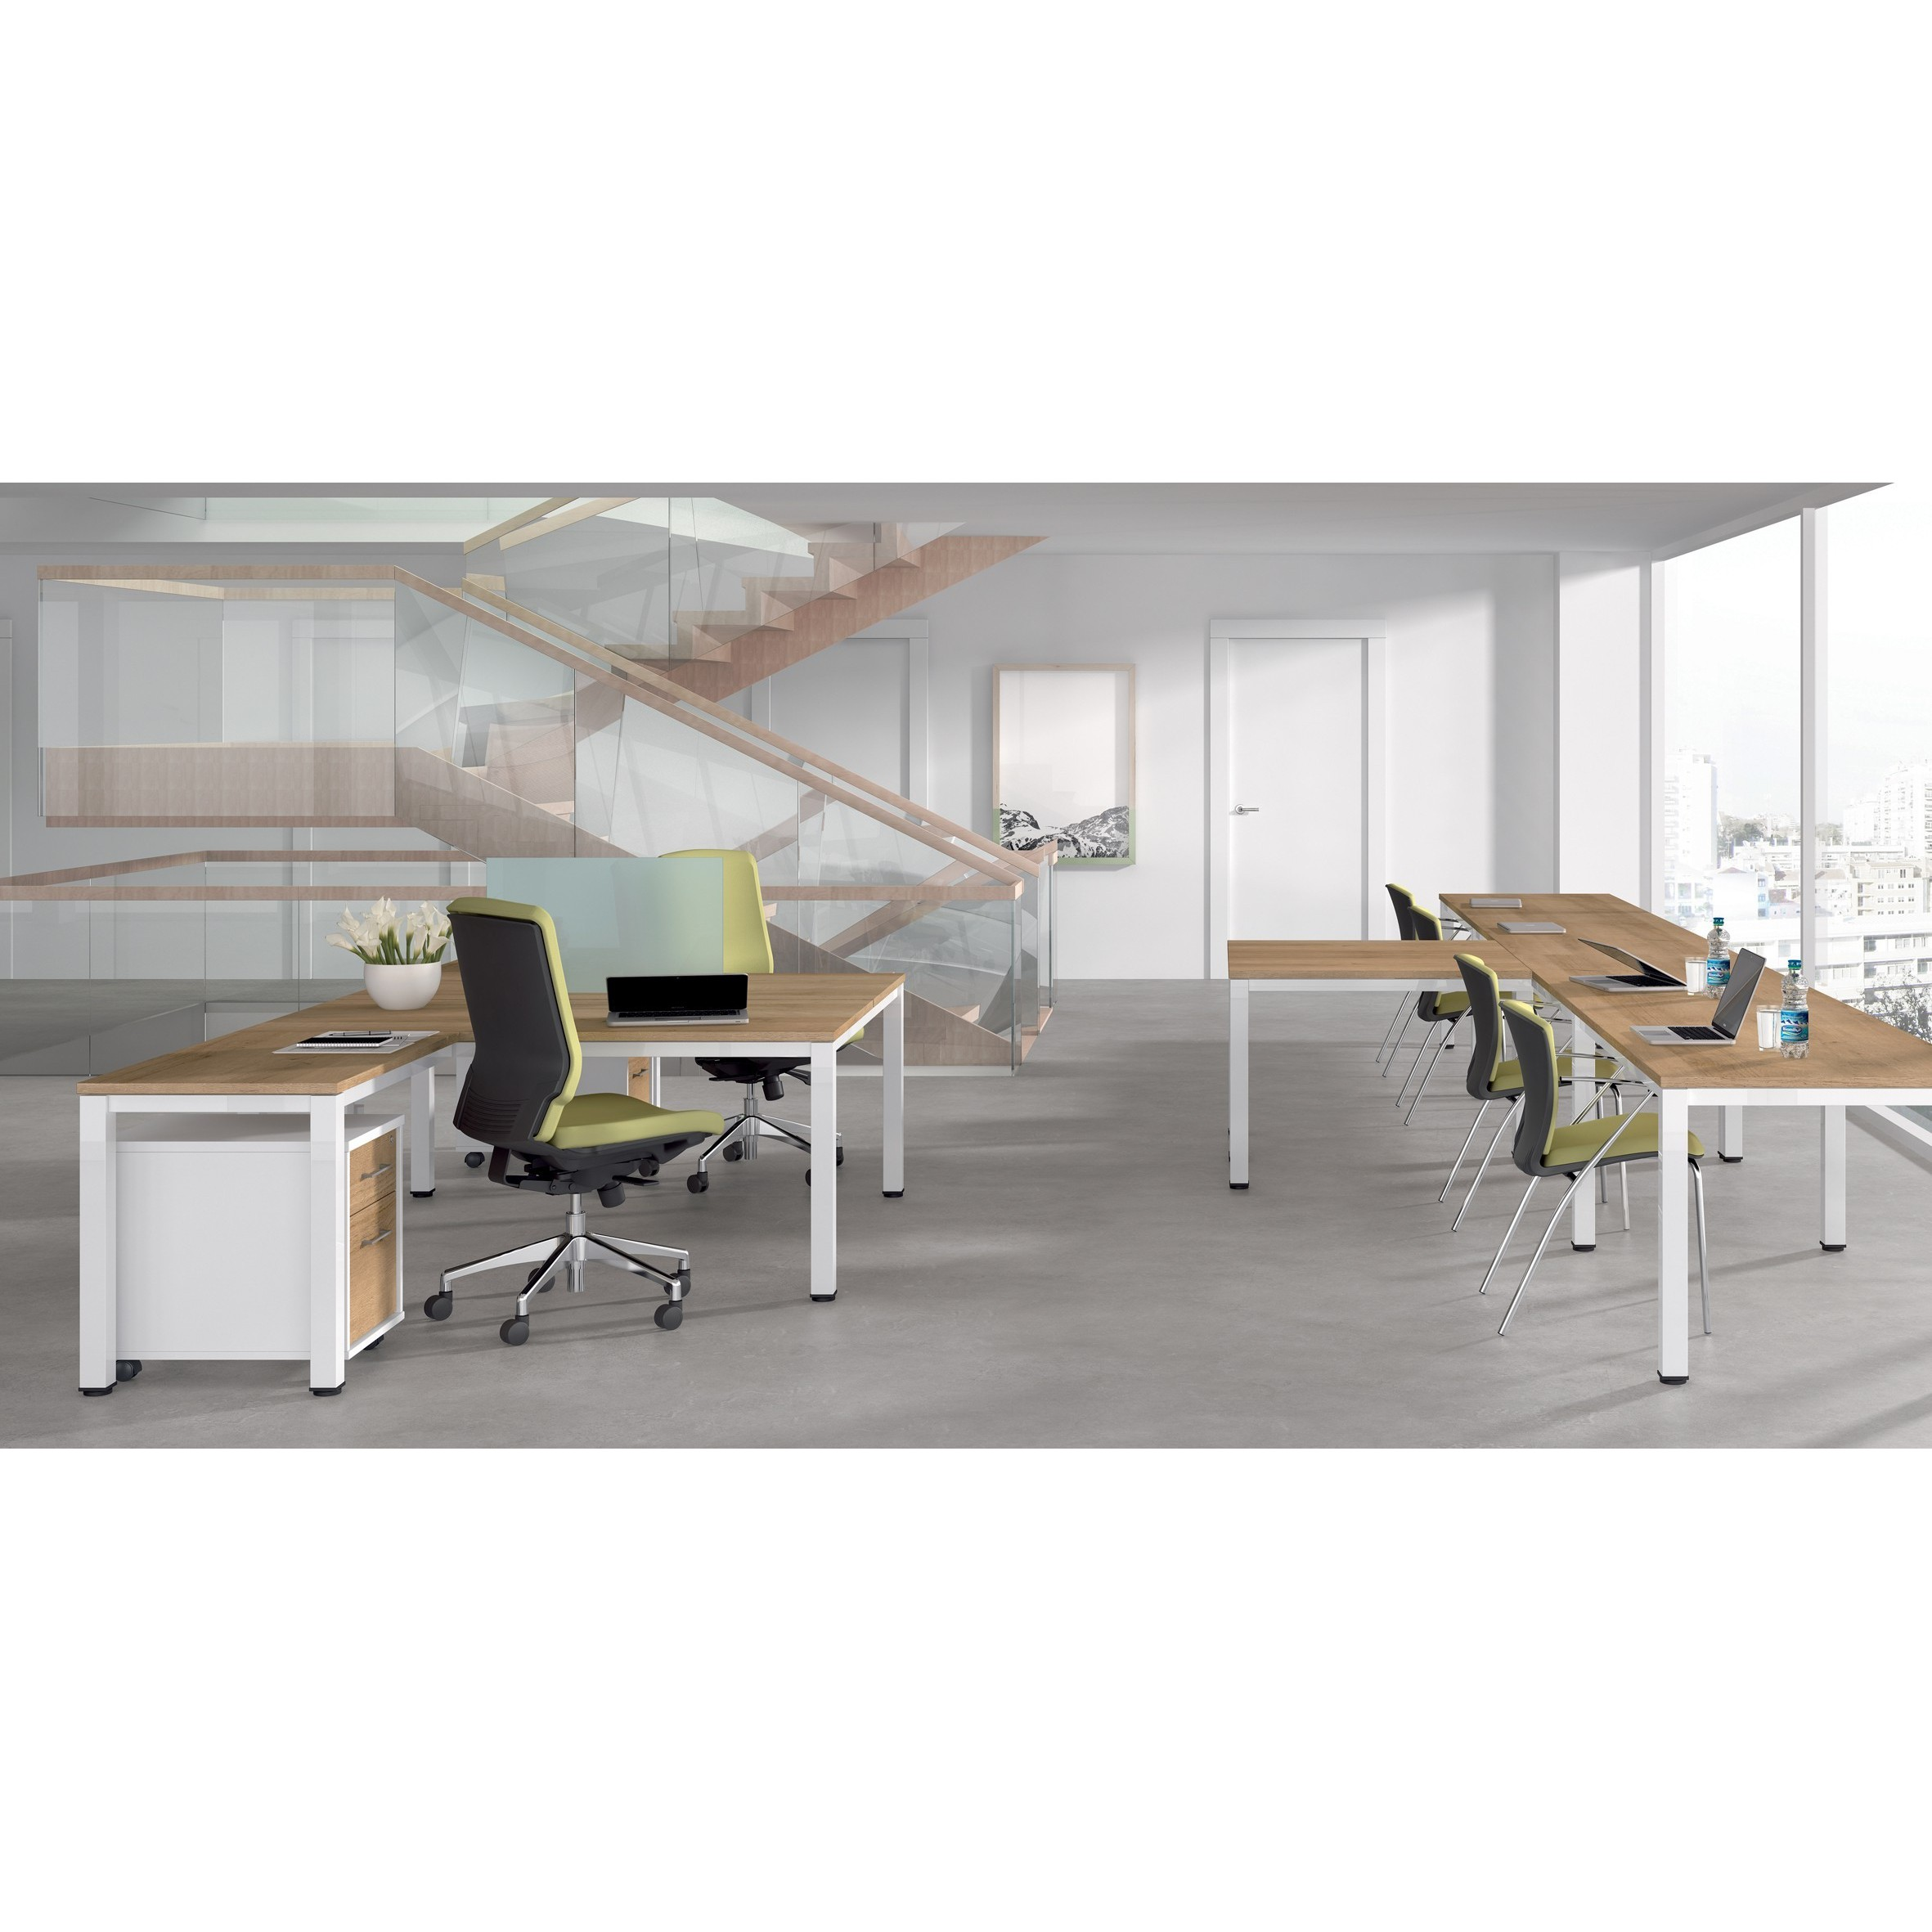 TABLE OFFICE 'S EXECUTIVE SERIES 120X60 CHROME/BEECH